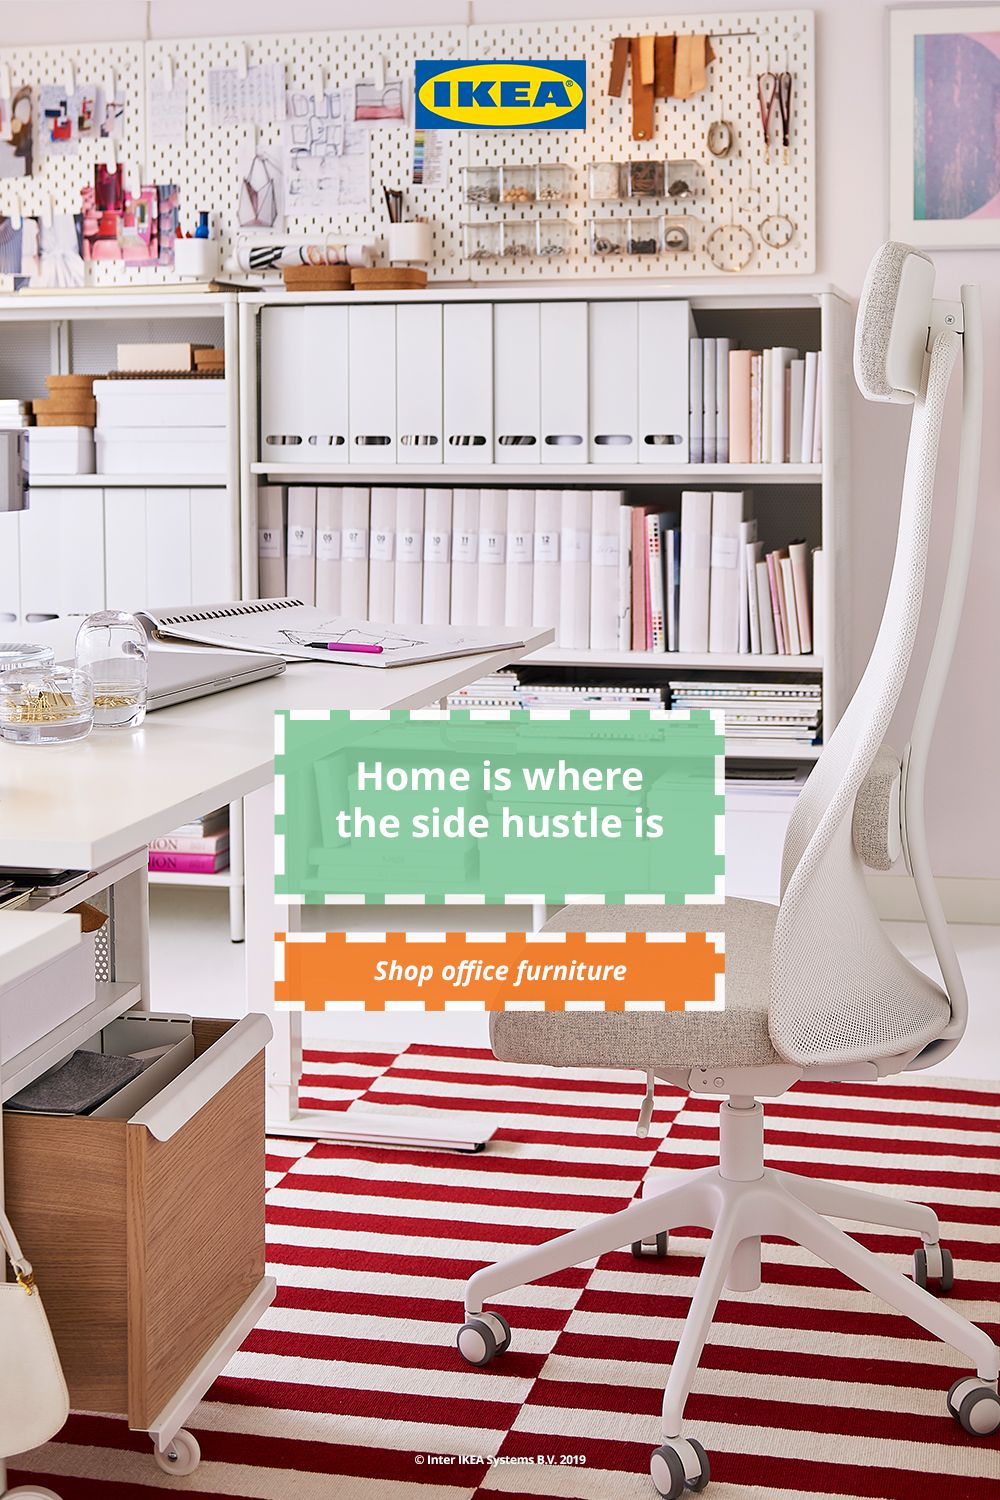 Office Furniture Ikea Business Therapy Office Decor Home Office Organization Furniture